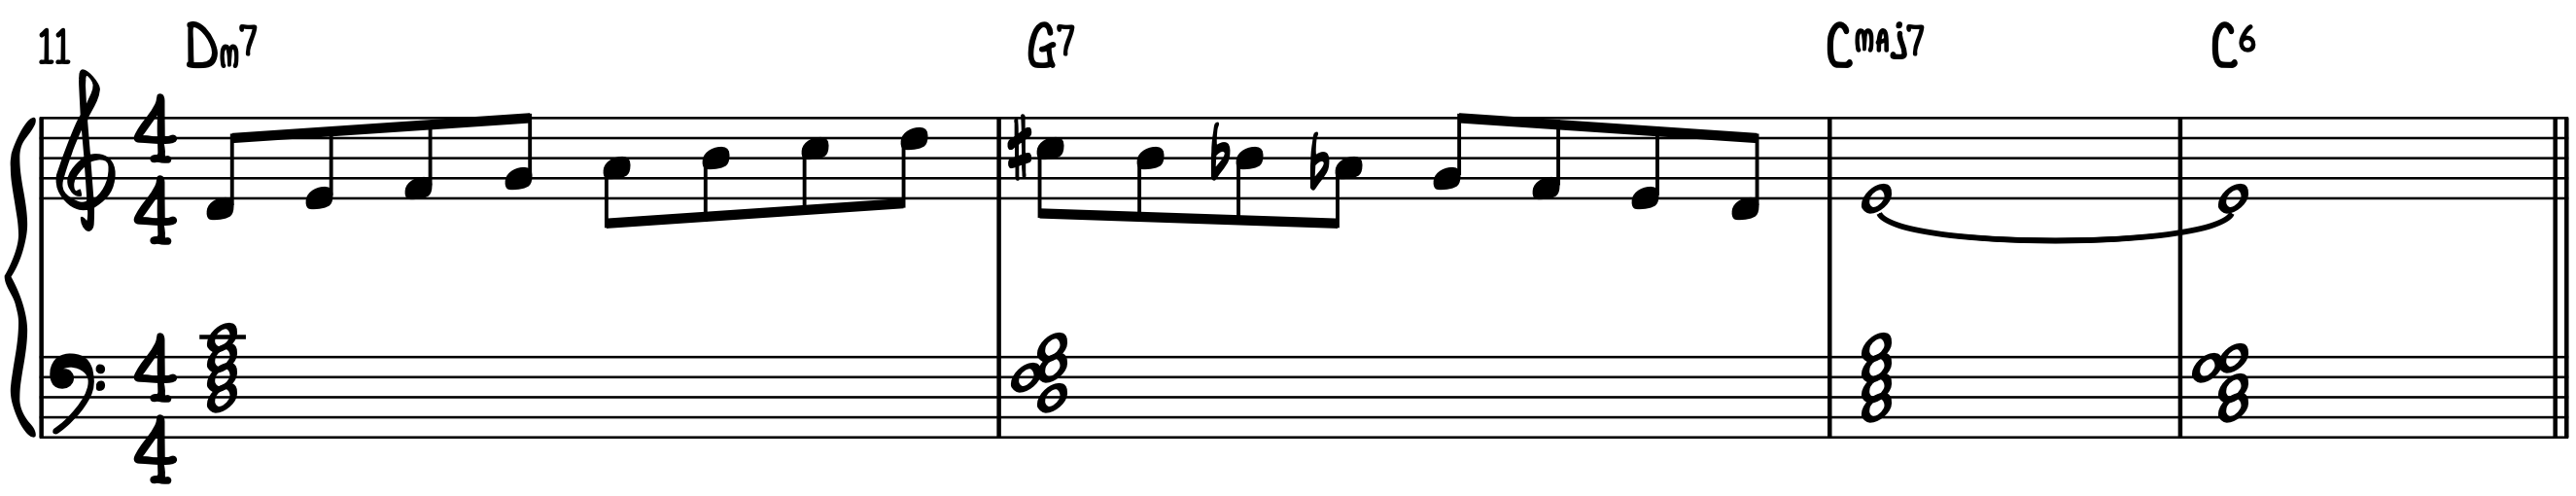 Connecting Dominant Diminished Scale Exercise 1